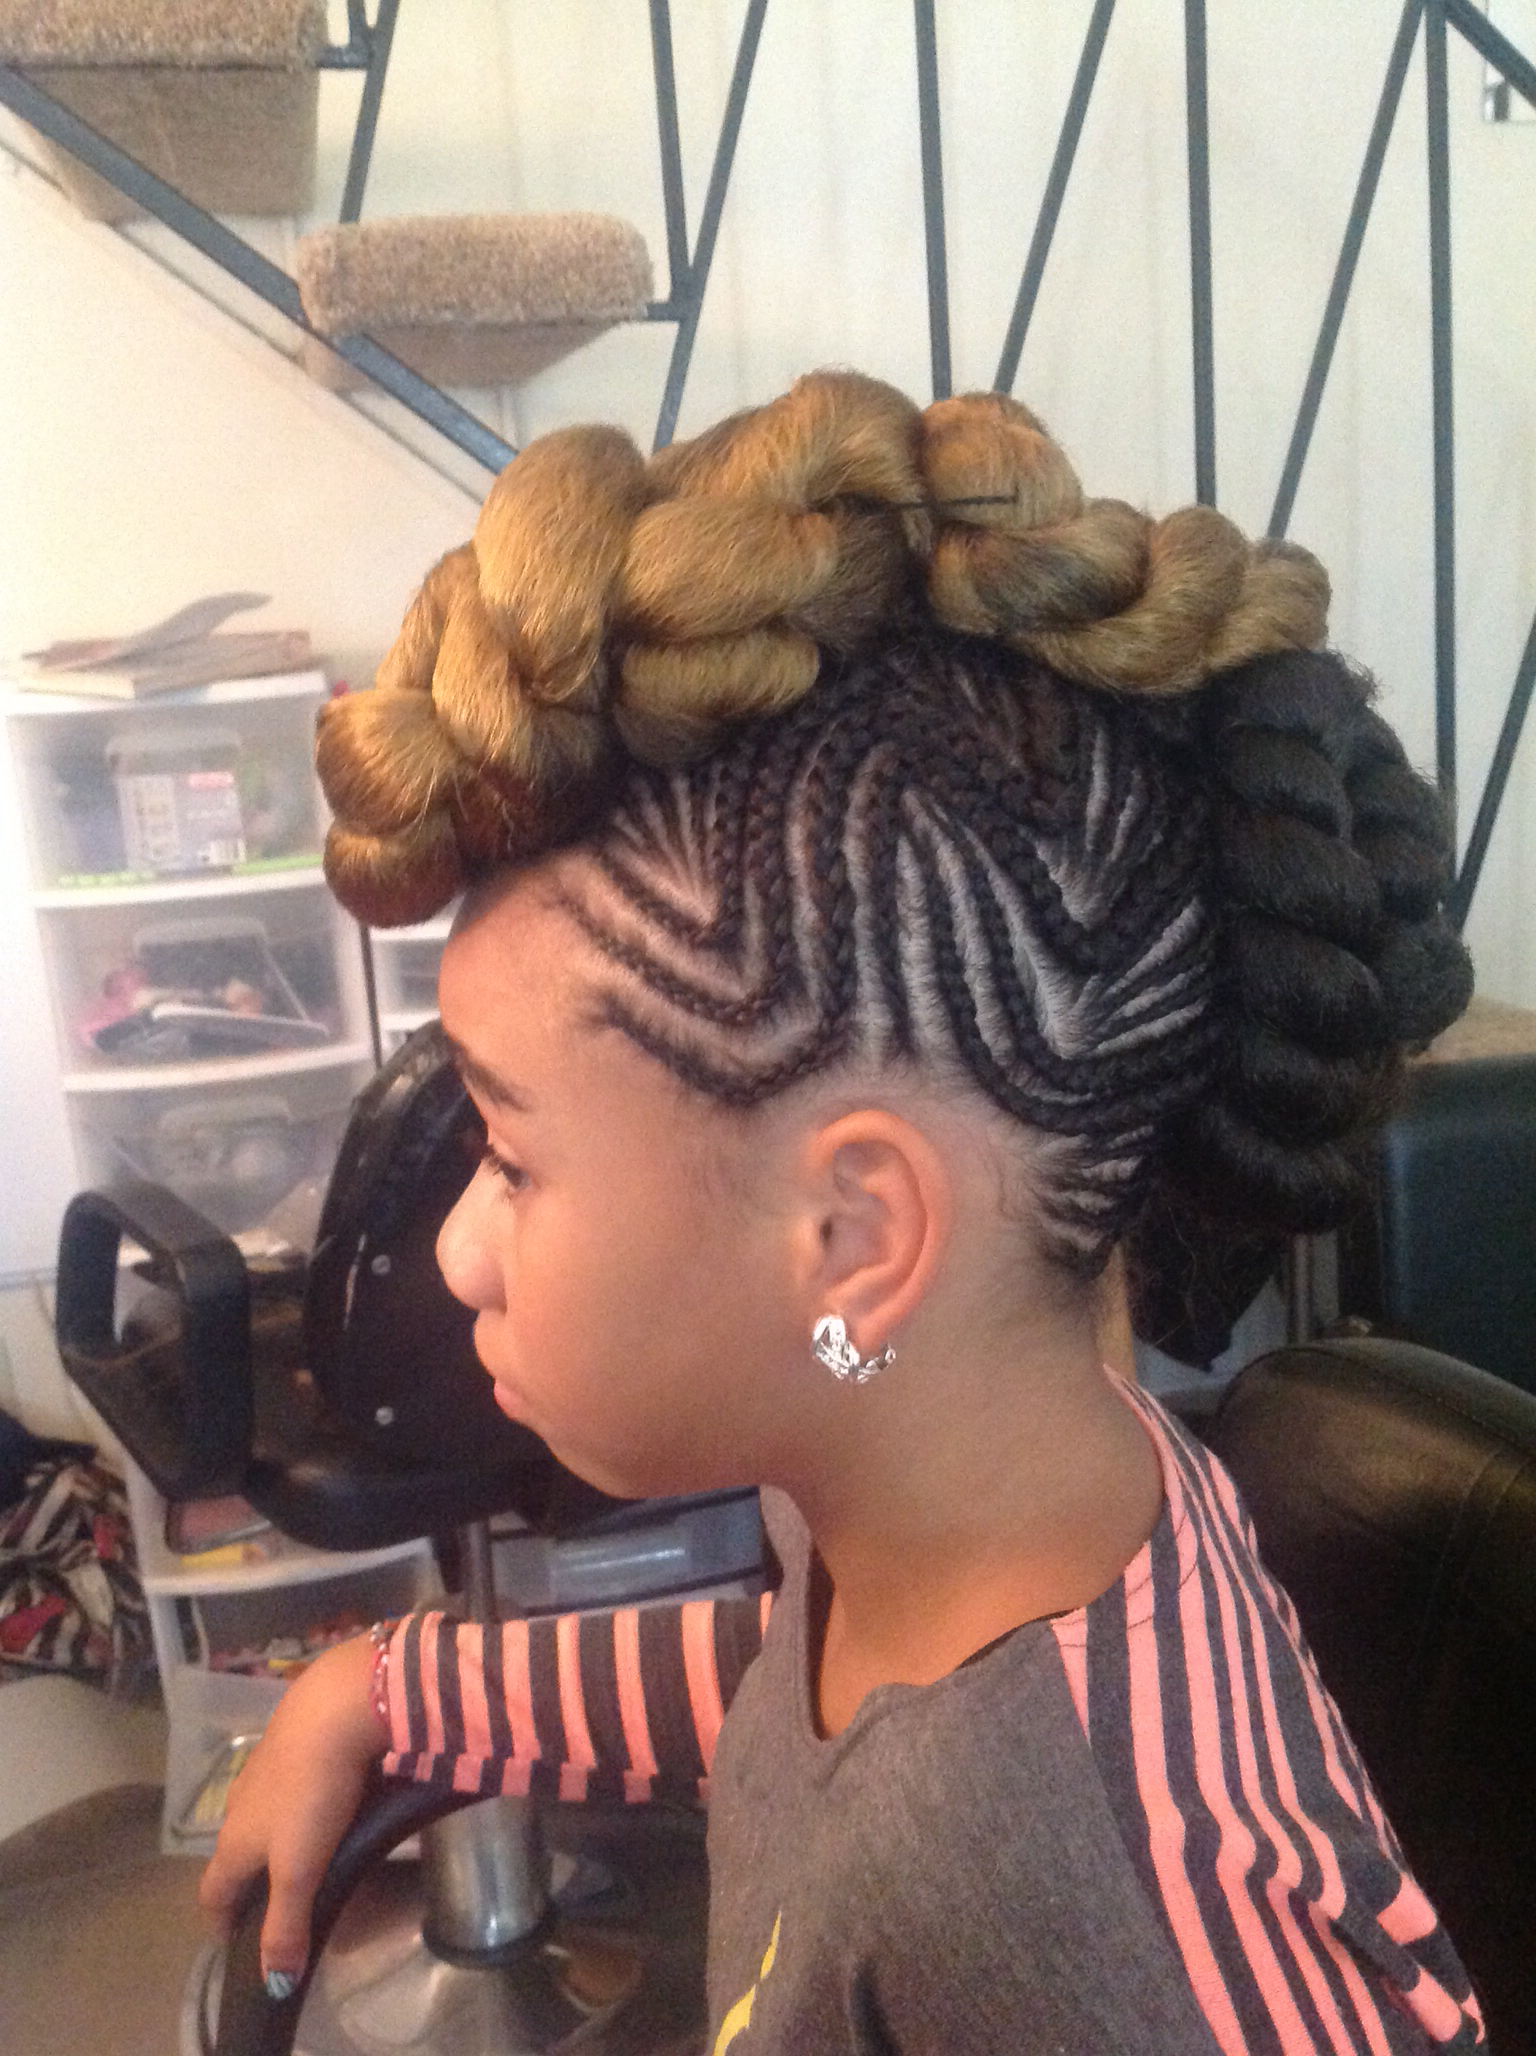 15 Foremost Braided Mohawk Hairstyles – Mohawk With Braids In Well Known Twisted Braids Mohawk Hairstyles (Gallery 15 of 20)